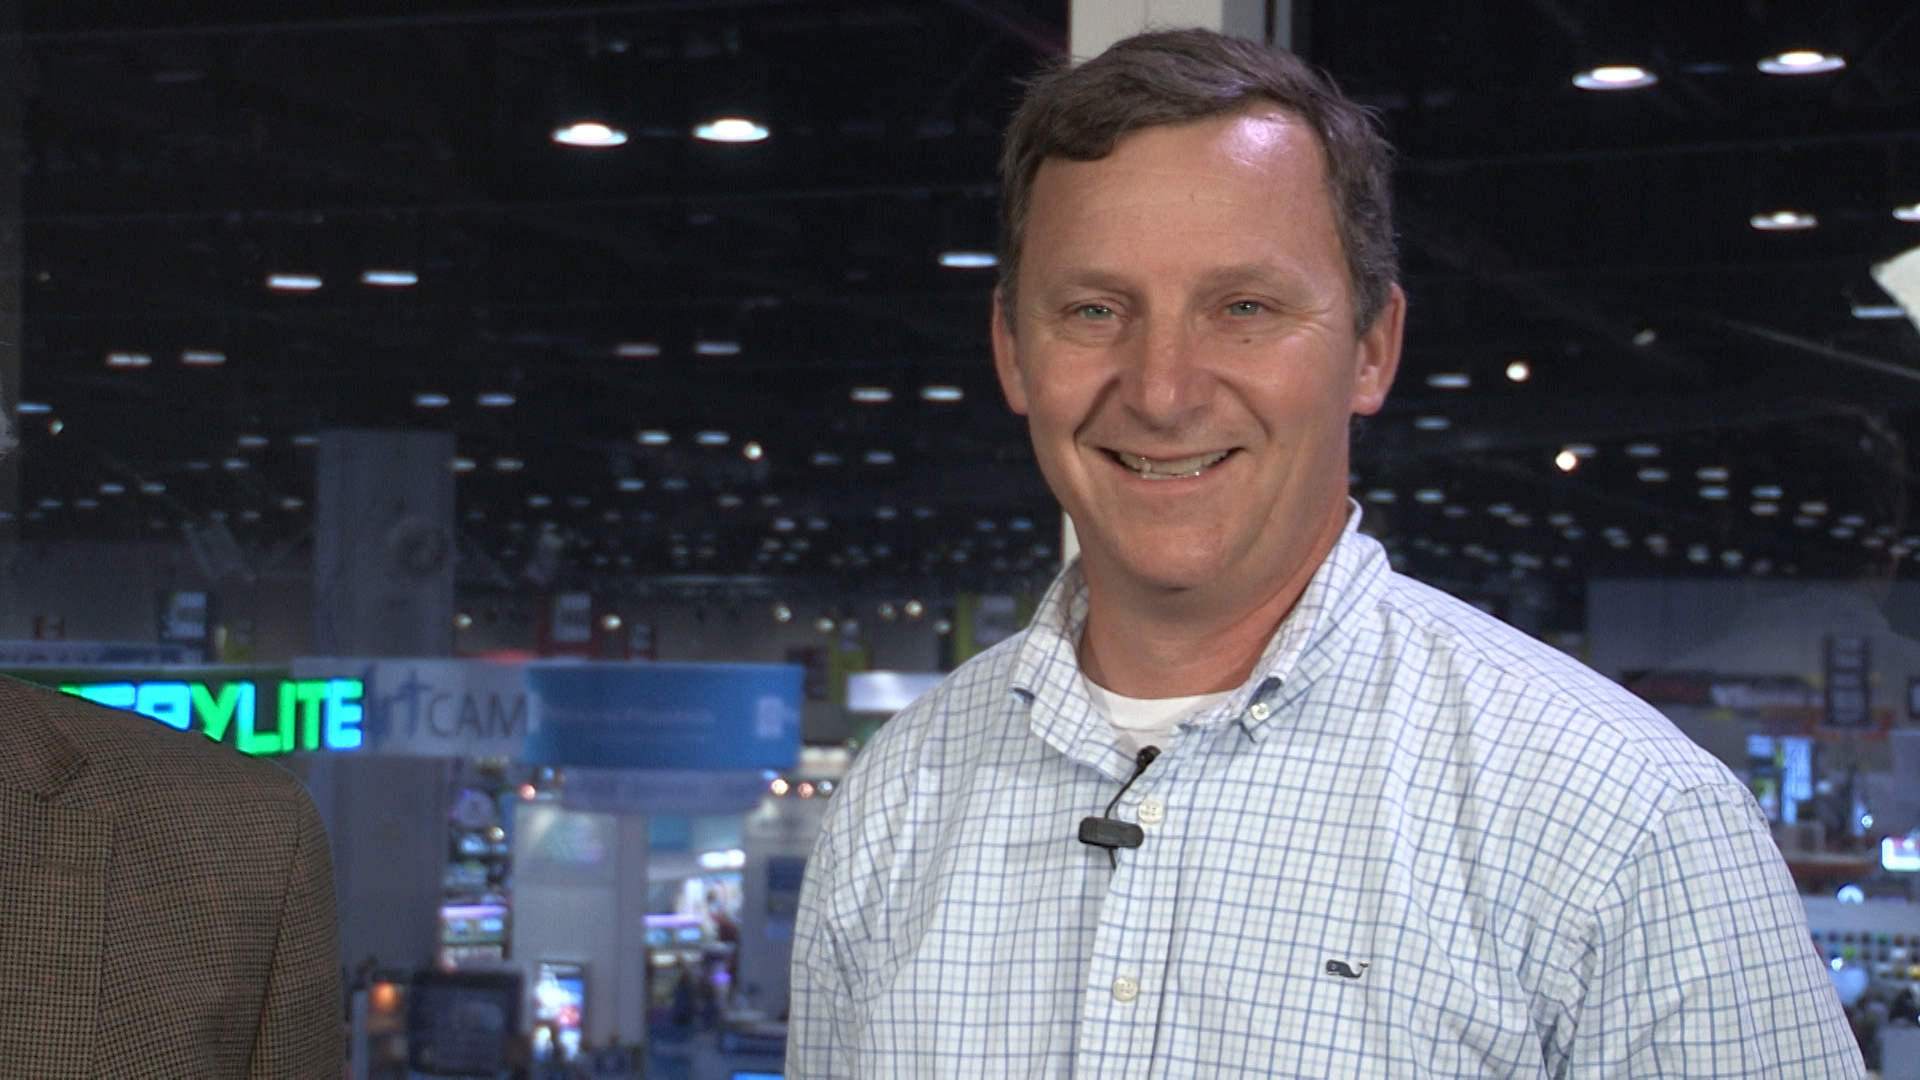 BleuPrint Creative's Scott Donovan on Digital Textile Printing